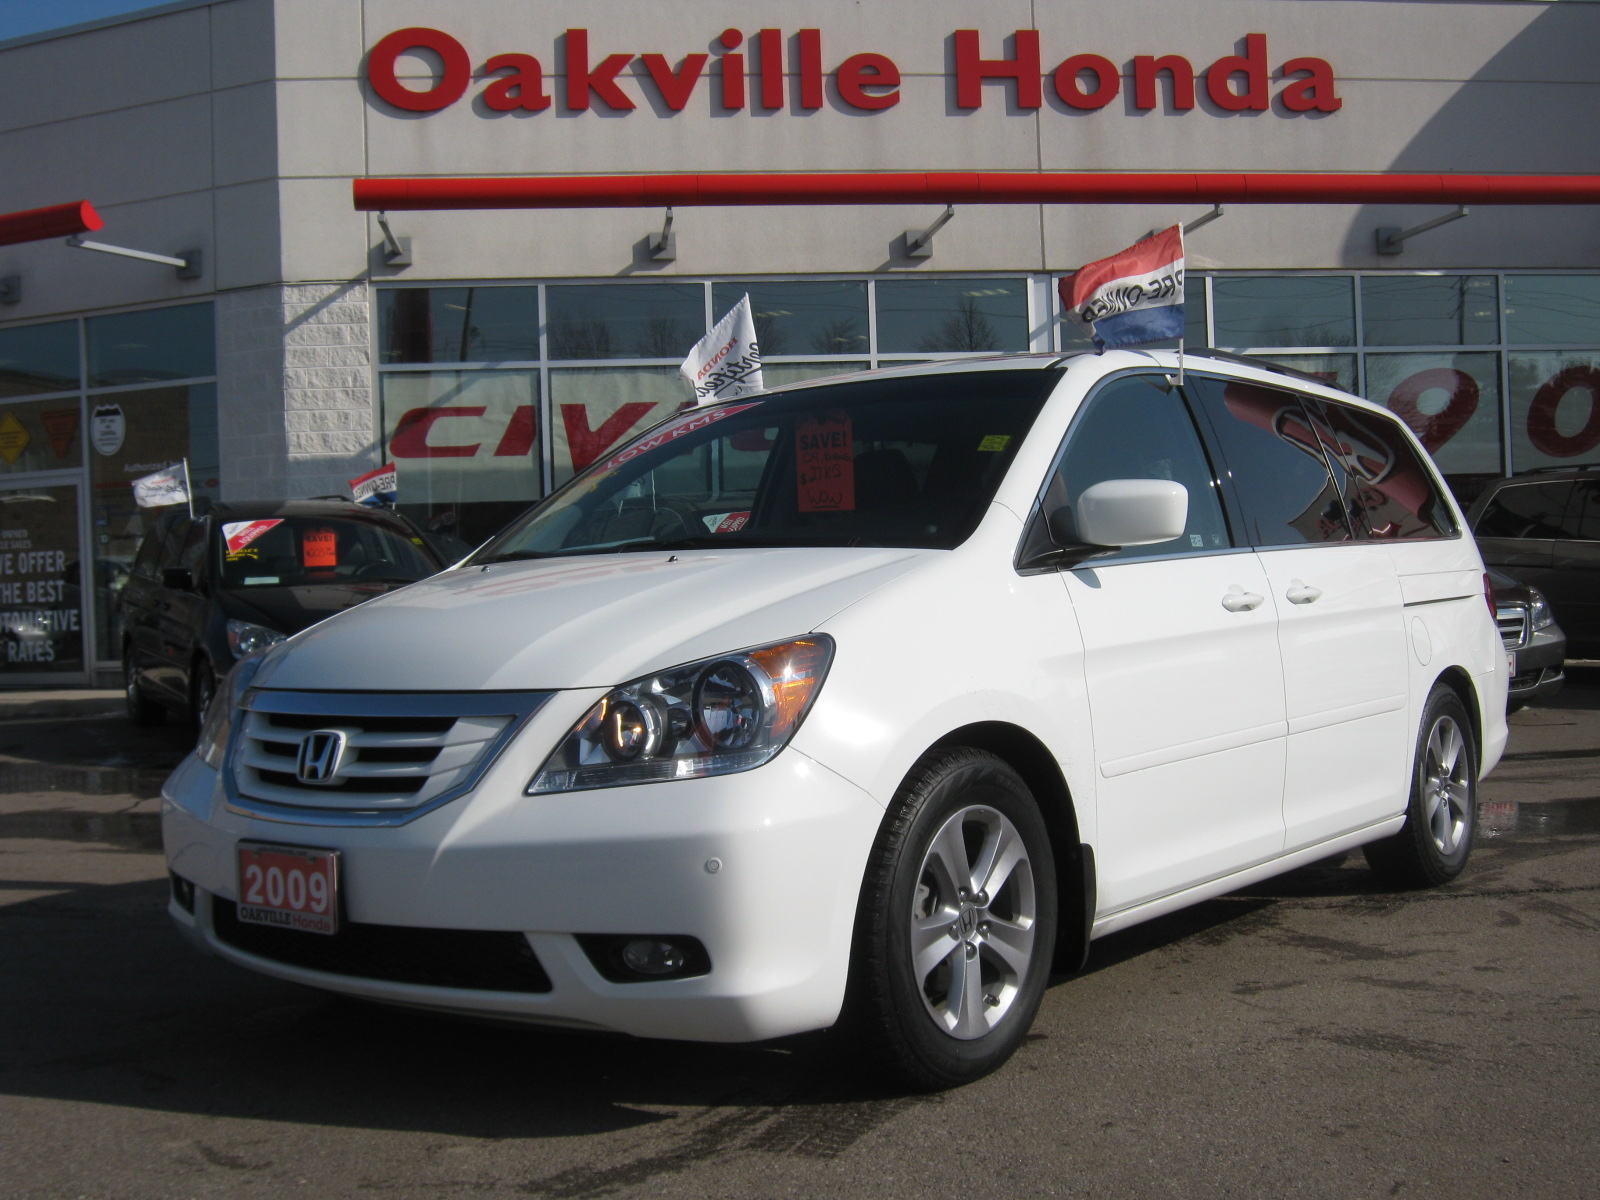 Honda Odyssey for sale Great deals on Honda Odyssey